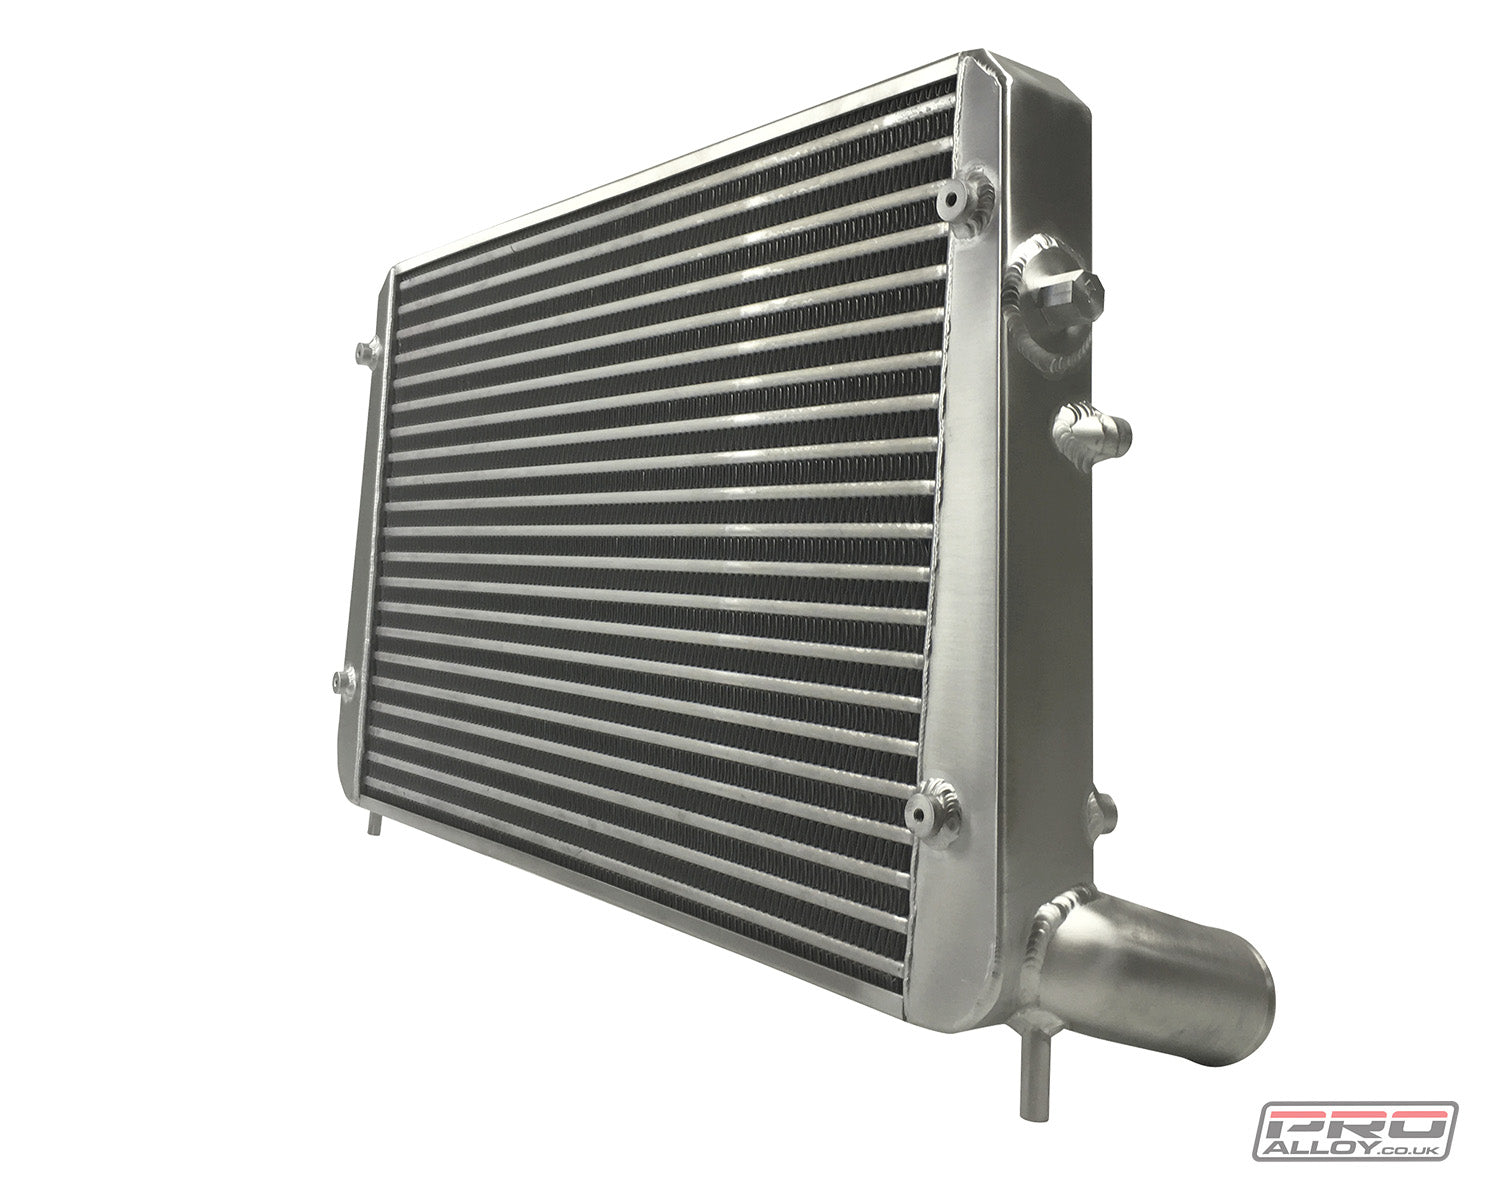 Golf MK6 R Intercooler